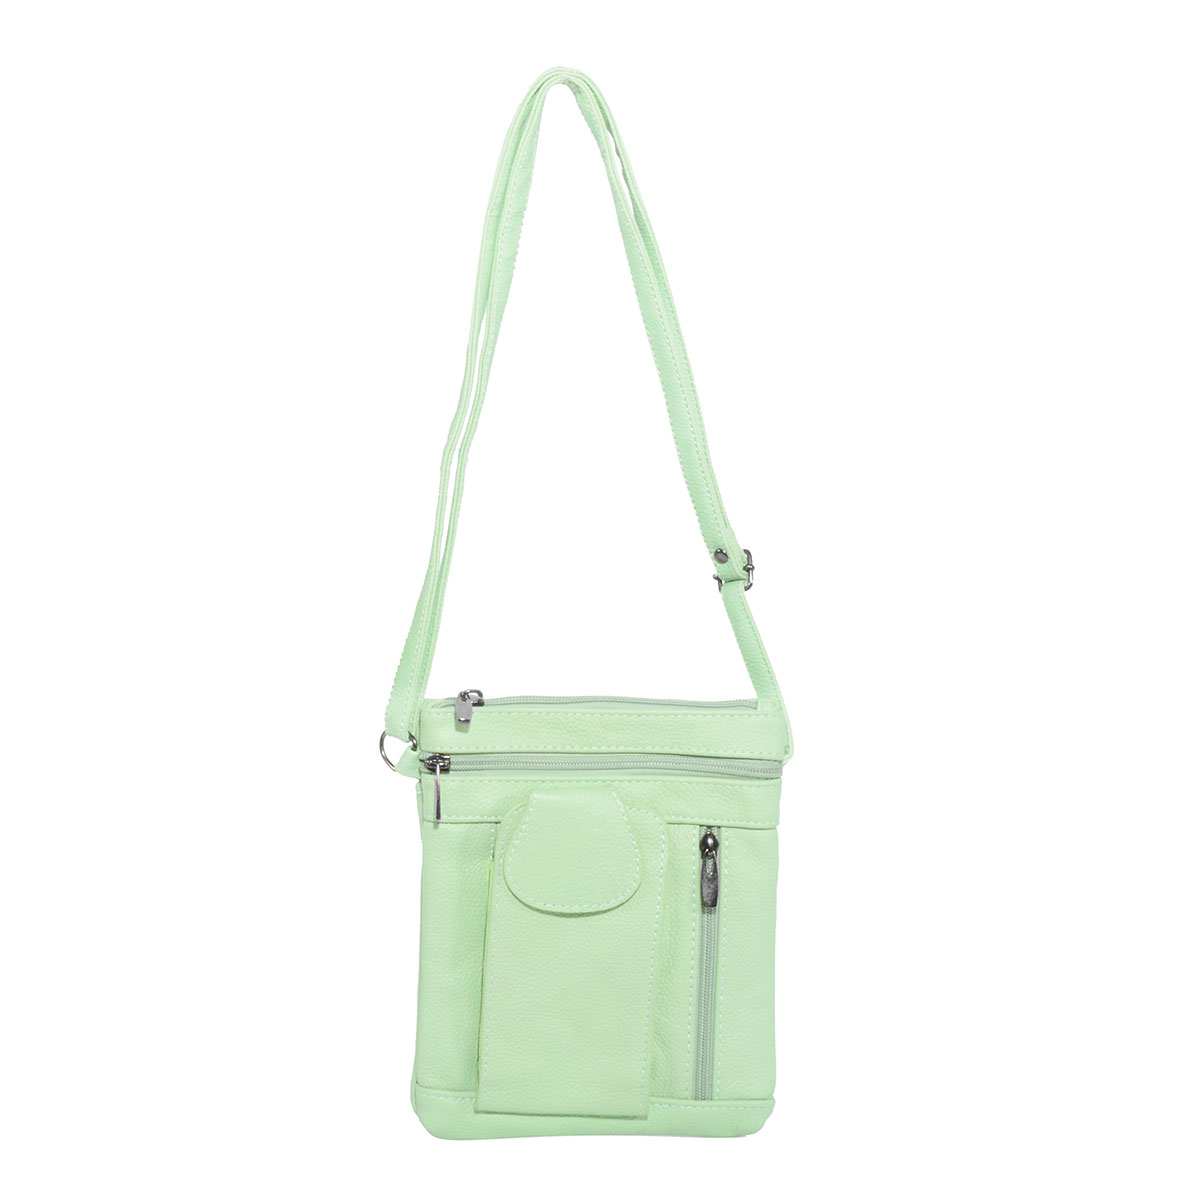 Nyc Closeout Mint Leather Crossbody Bag With Phone Compartment 9x7